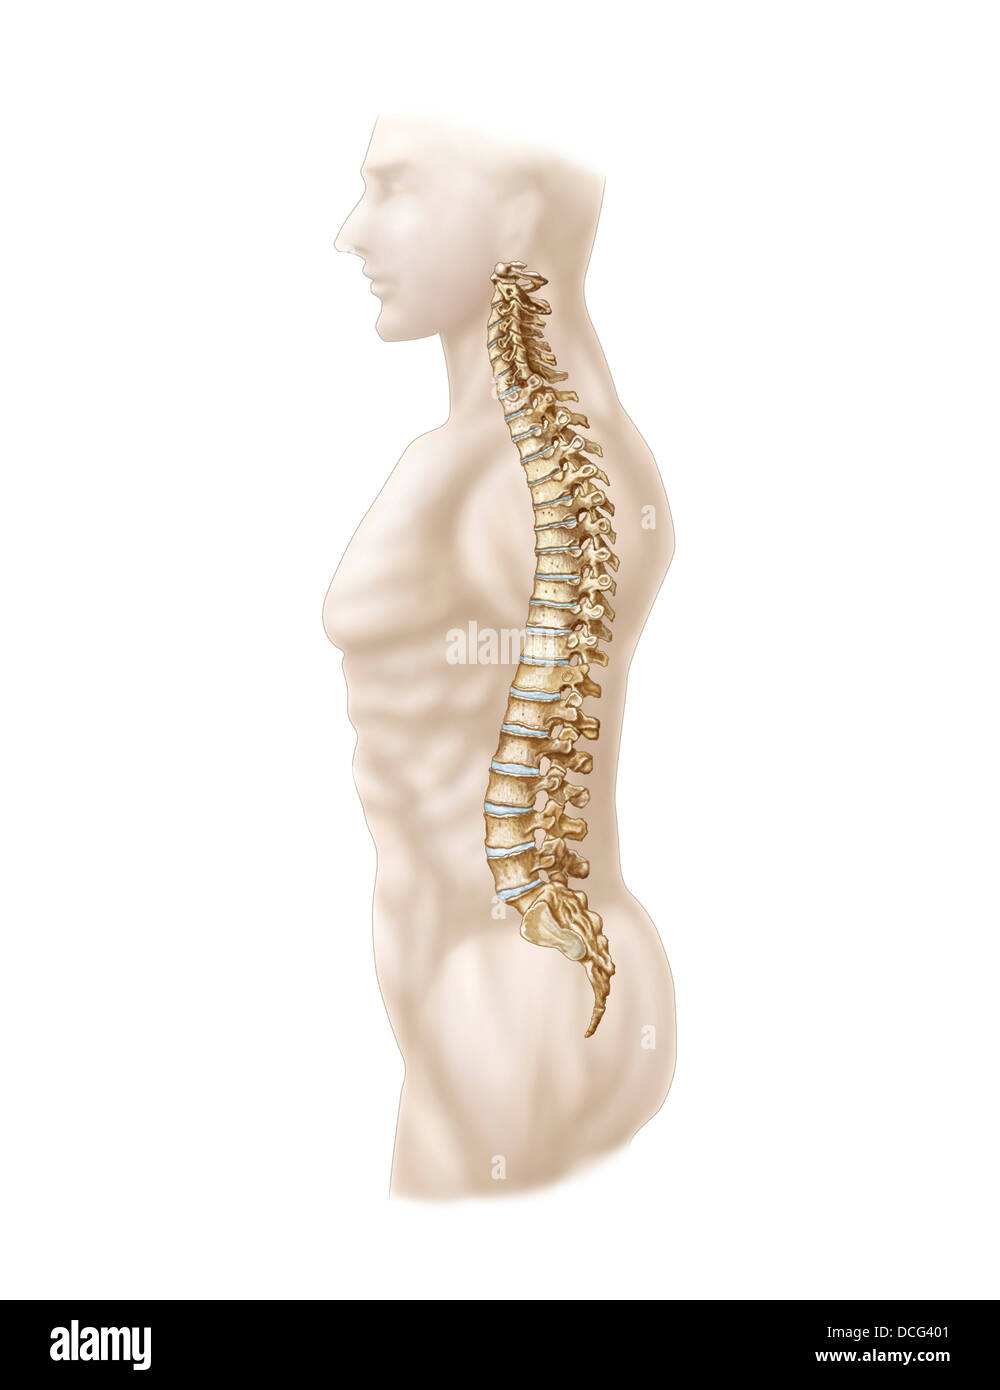 Anatomy of human vertebral column, left lateral view. - Stock Image